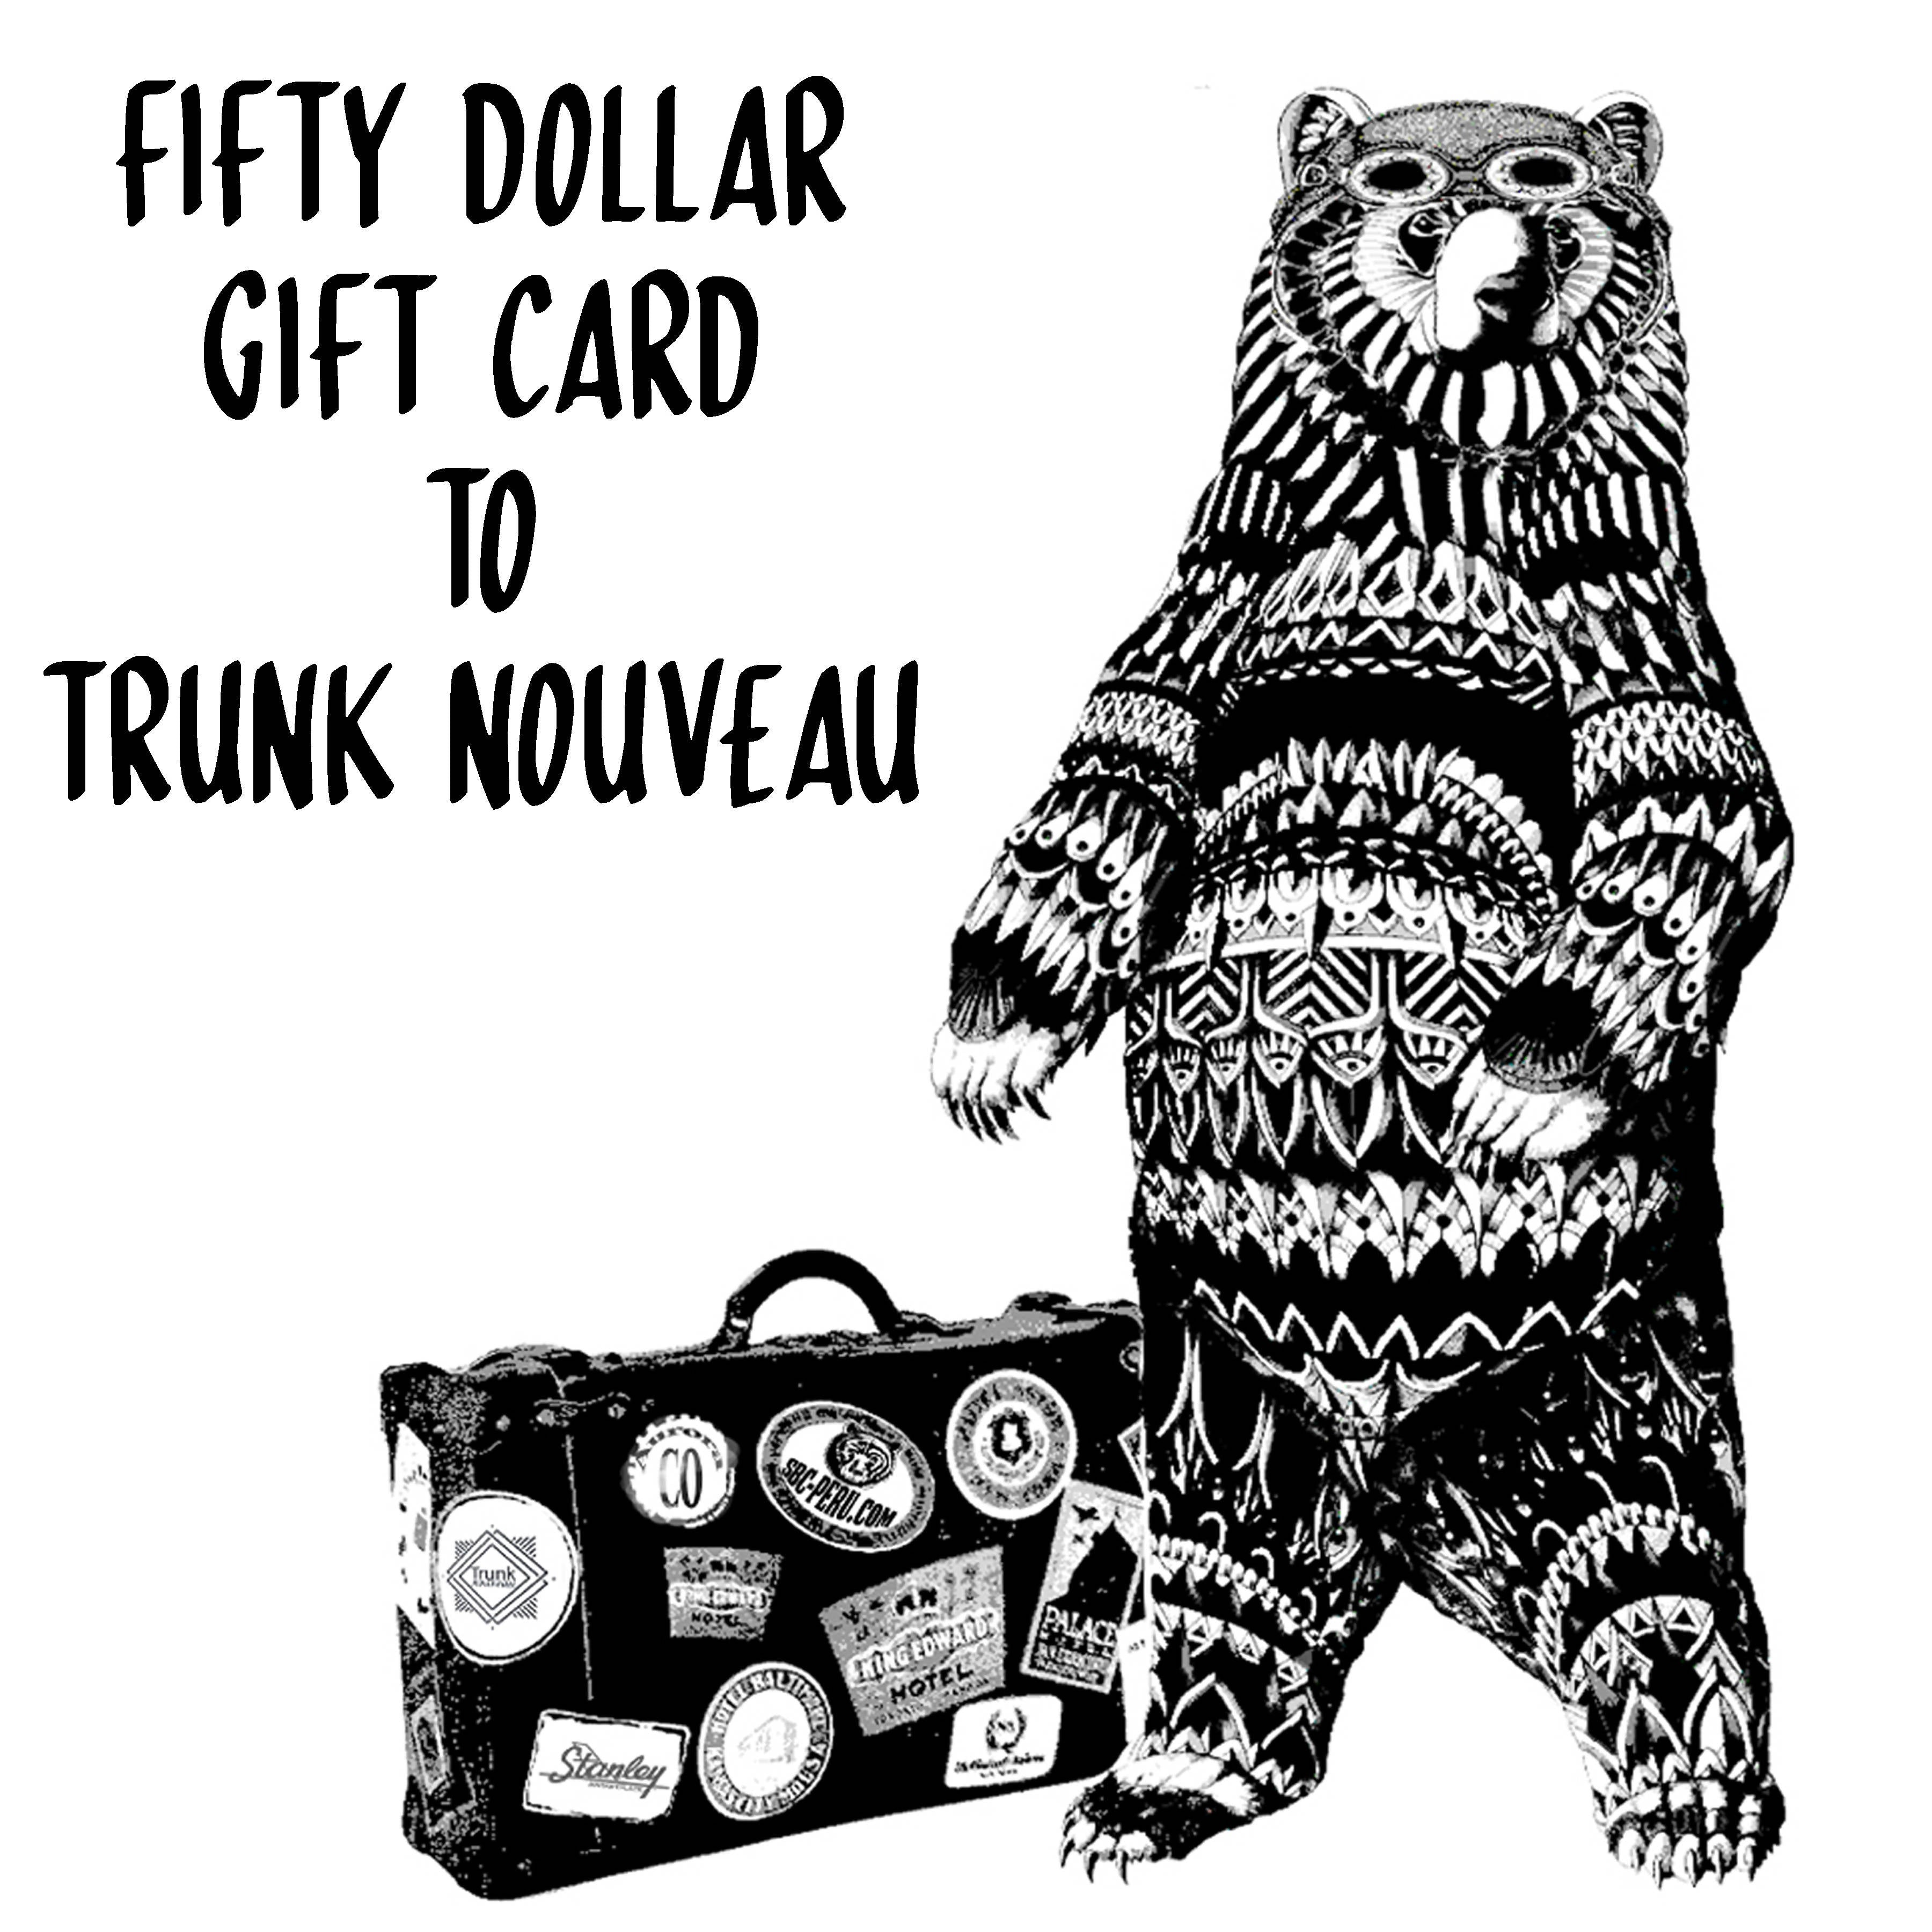 Fifty Dollar Gift Card to Trunk Nouveau